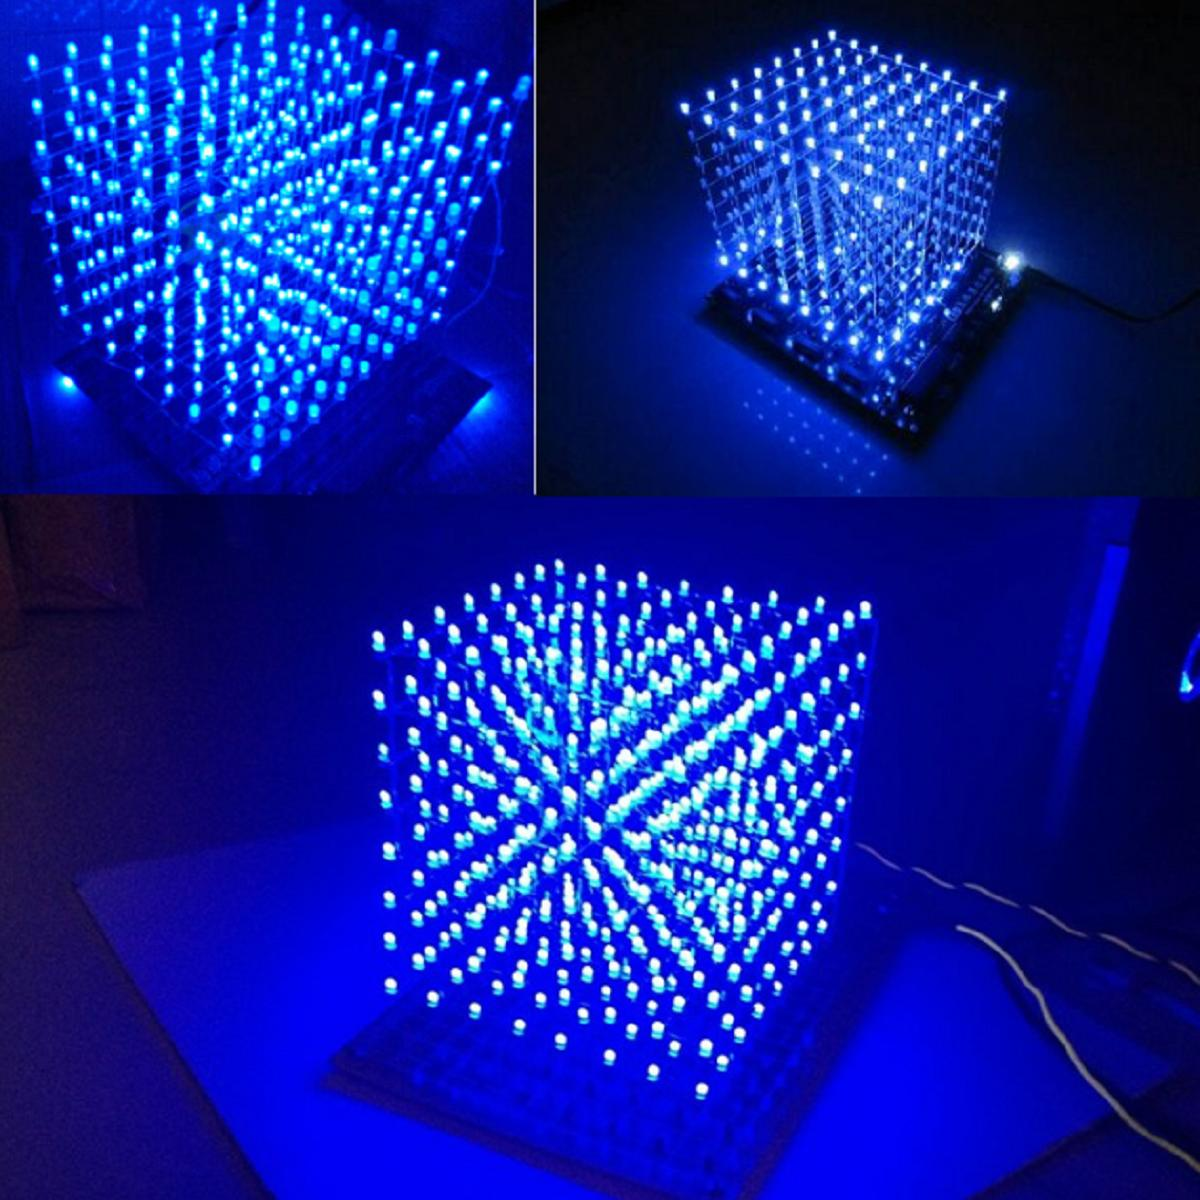 Image 2 - LEORY 8x8X8 512 LED DIY 3D LED Light Cube Kit Wi Fi Connected APP Control Music Spectrum LED Display Equipment MP3 DAC Circuit-in DAC from Consumer Electronics